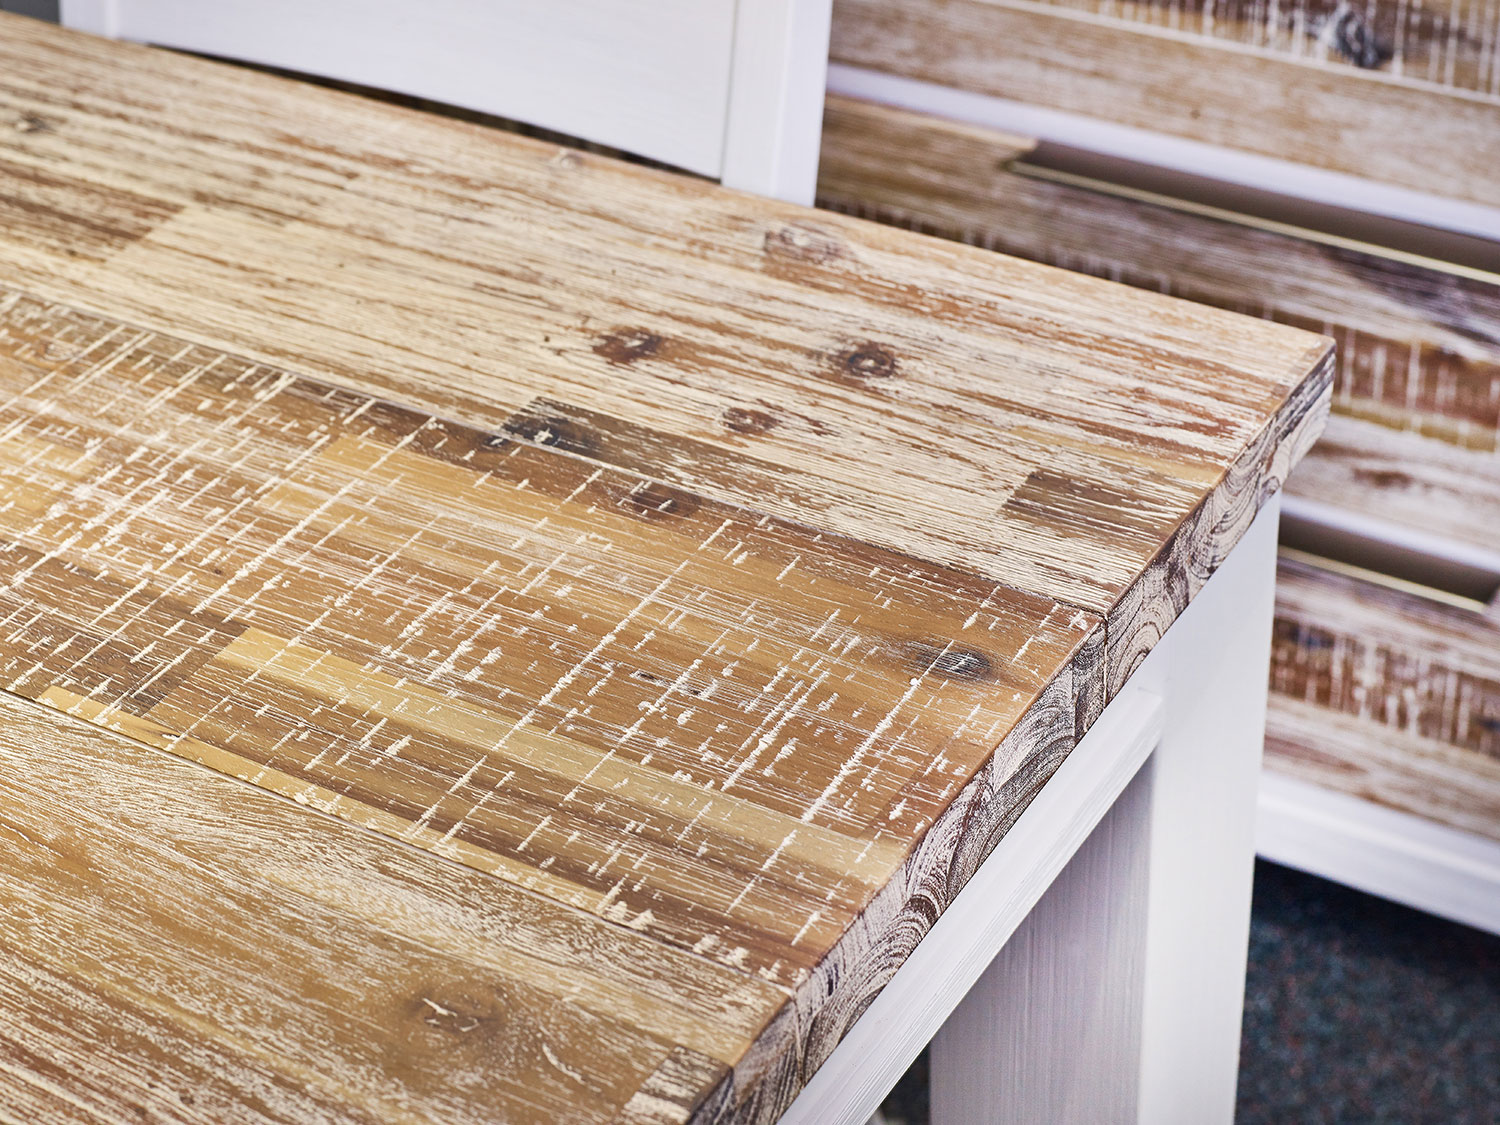 Homestead showcases acacia's its variegated texture and tones